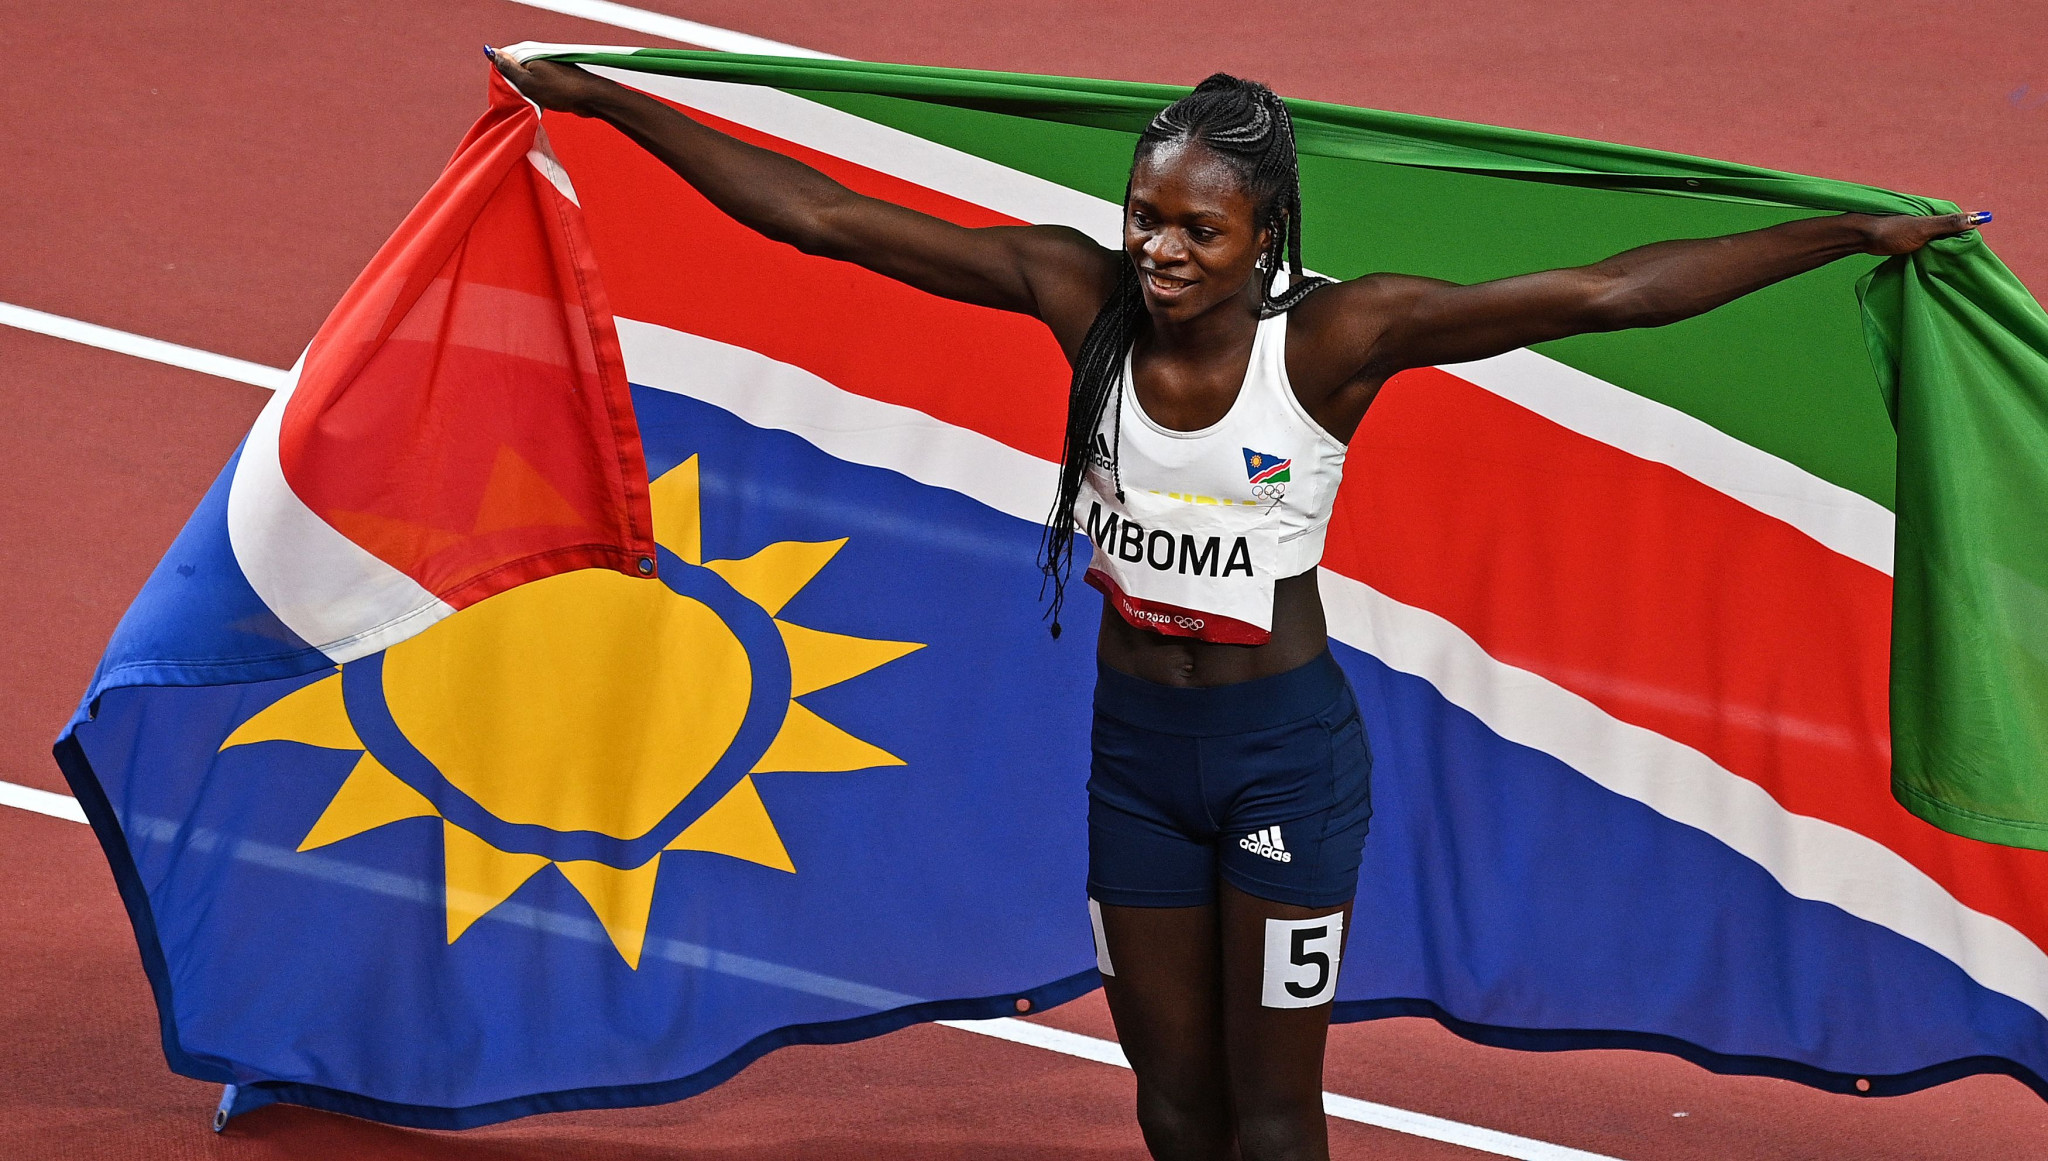 Second in that race was 18-year-old Christine Mboma of Namibia, who was not allowed to run over her preferred distance of 400m because of World Athletics' rules on women athletes' naturally-occurring testosterone levels, but still leaves the Olympics with a medal ©Getty Images